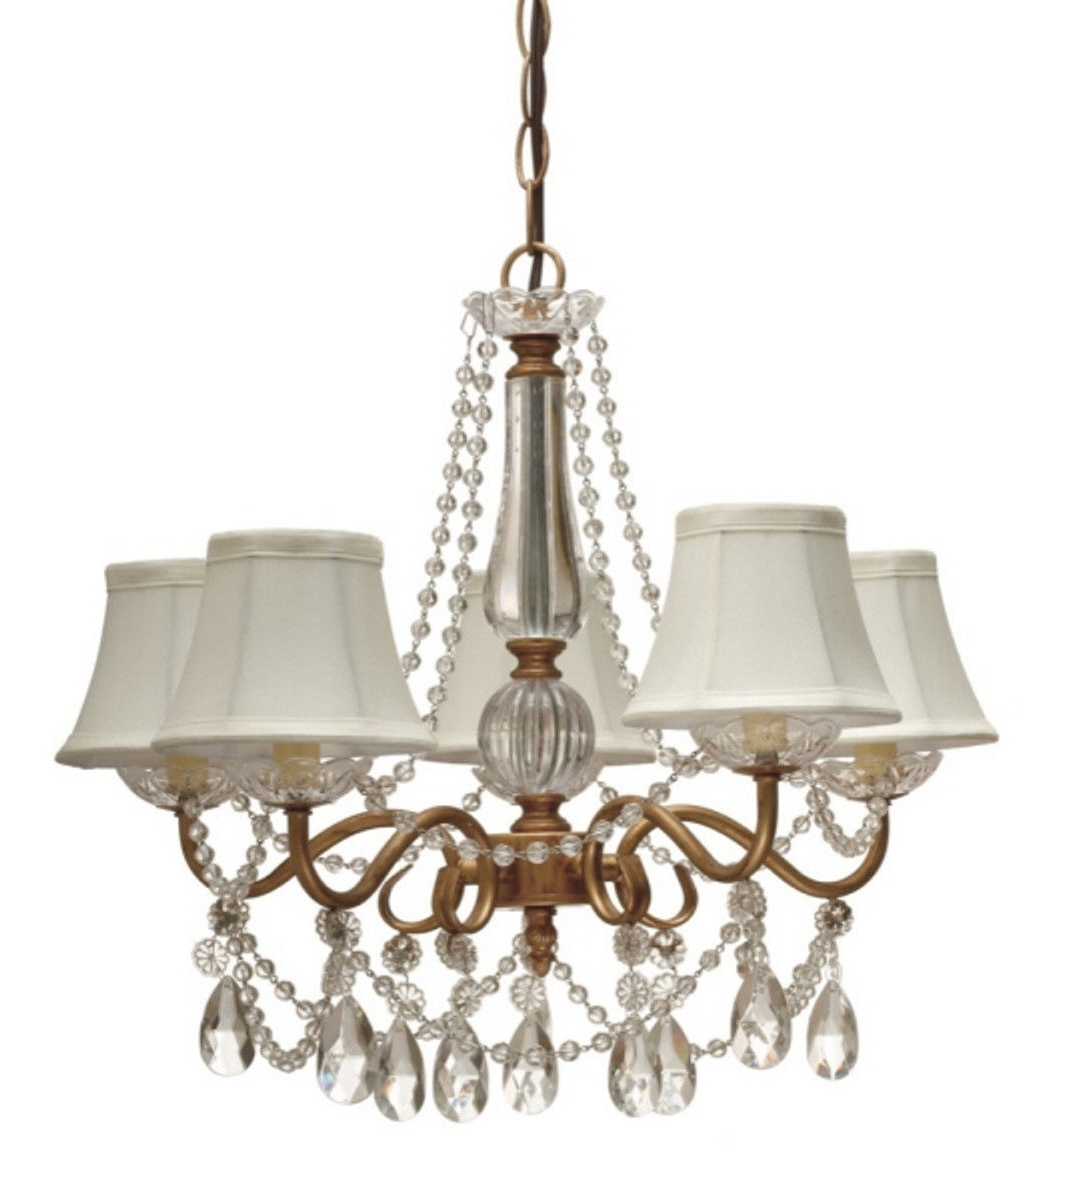 Lamp Shade Pro In Best And Newest Lampshade Chandeliers (View 7 of 15)